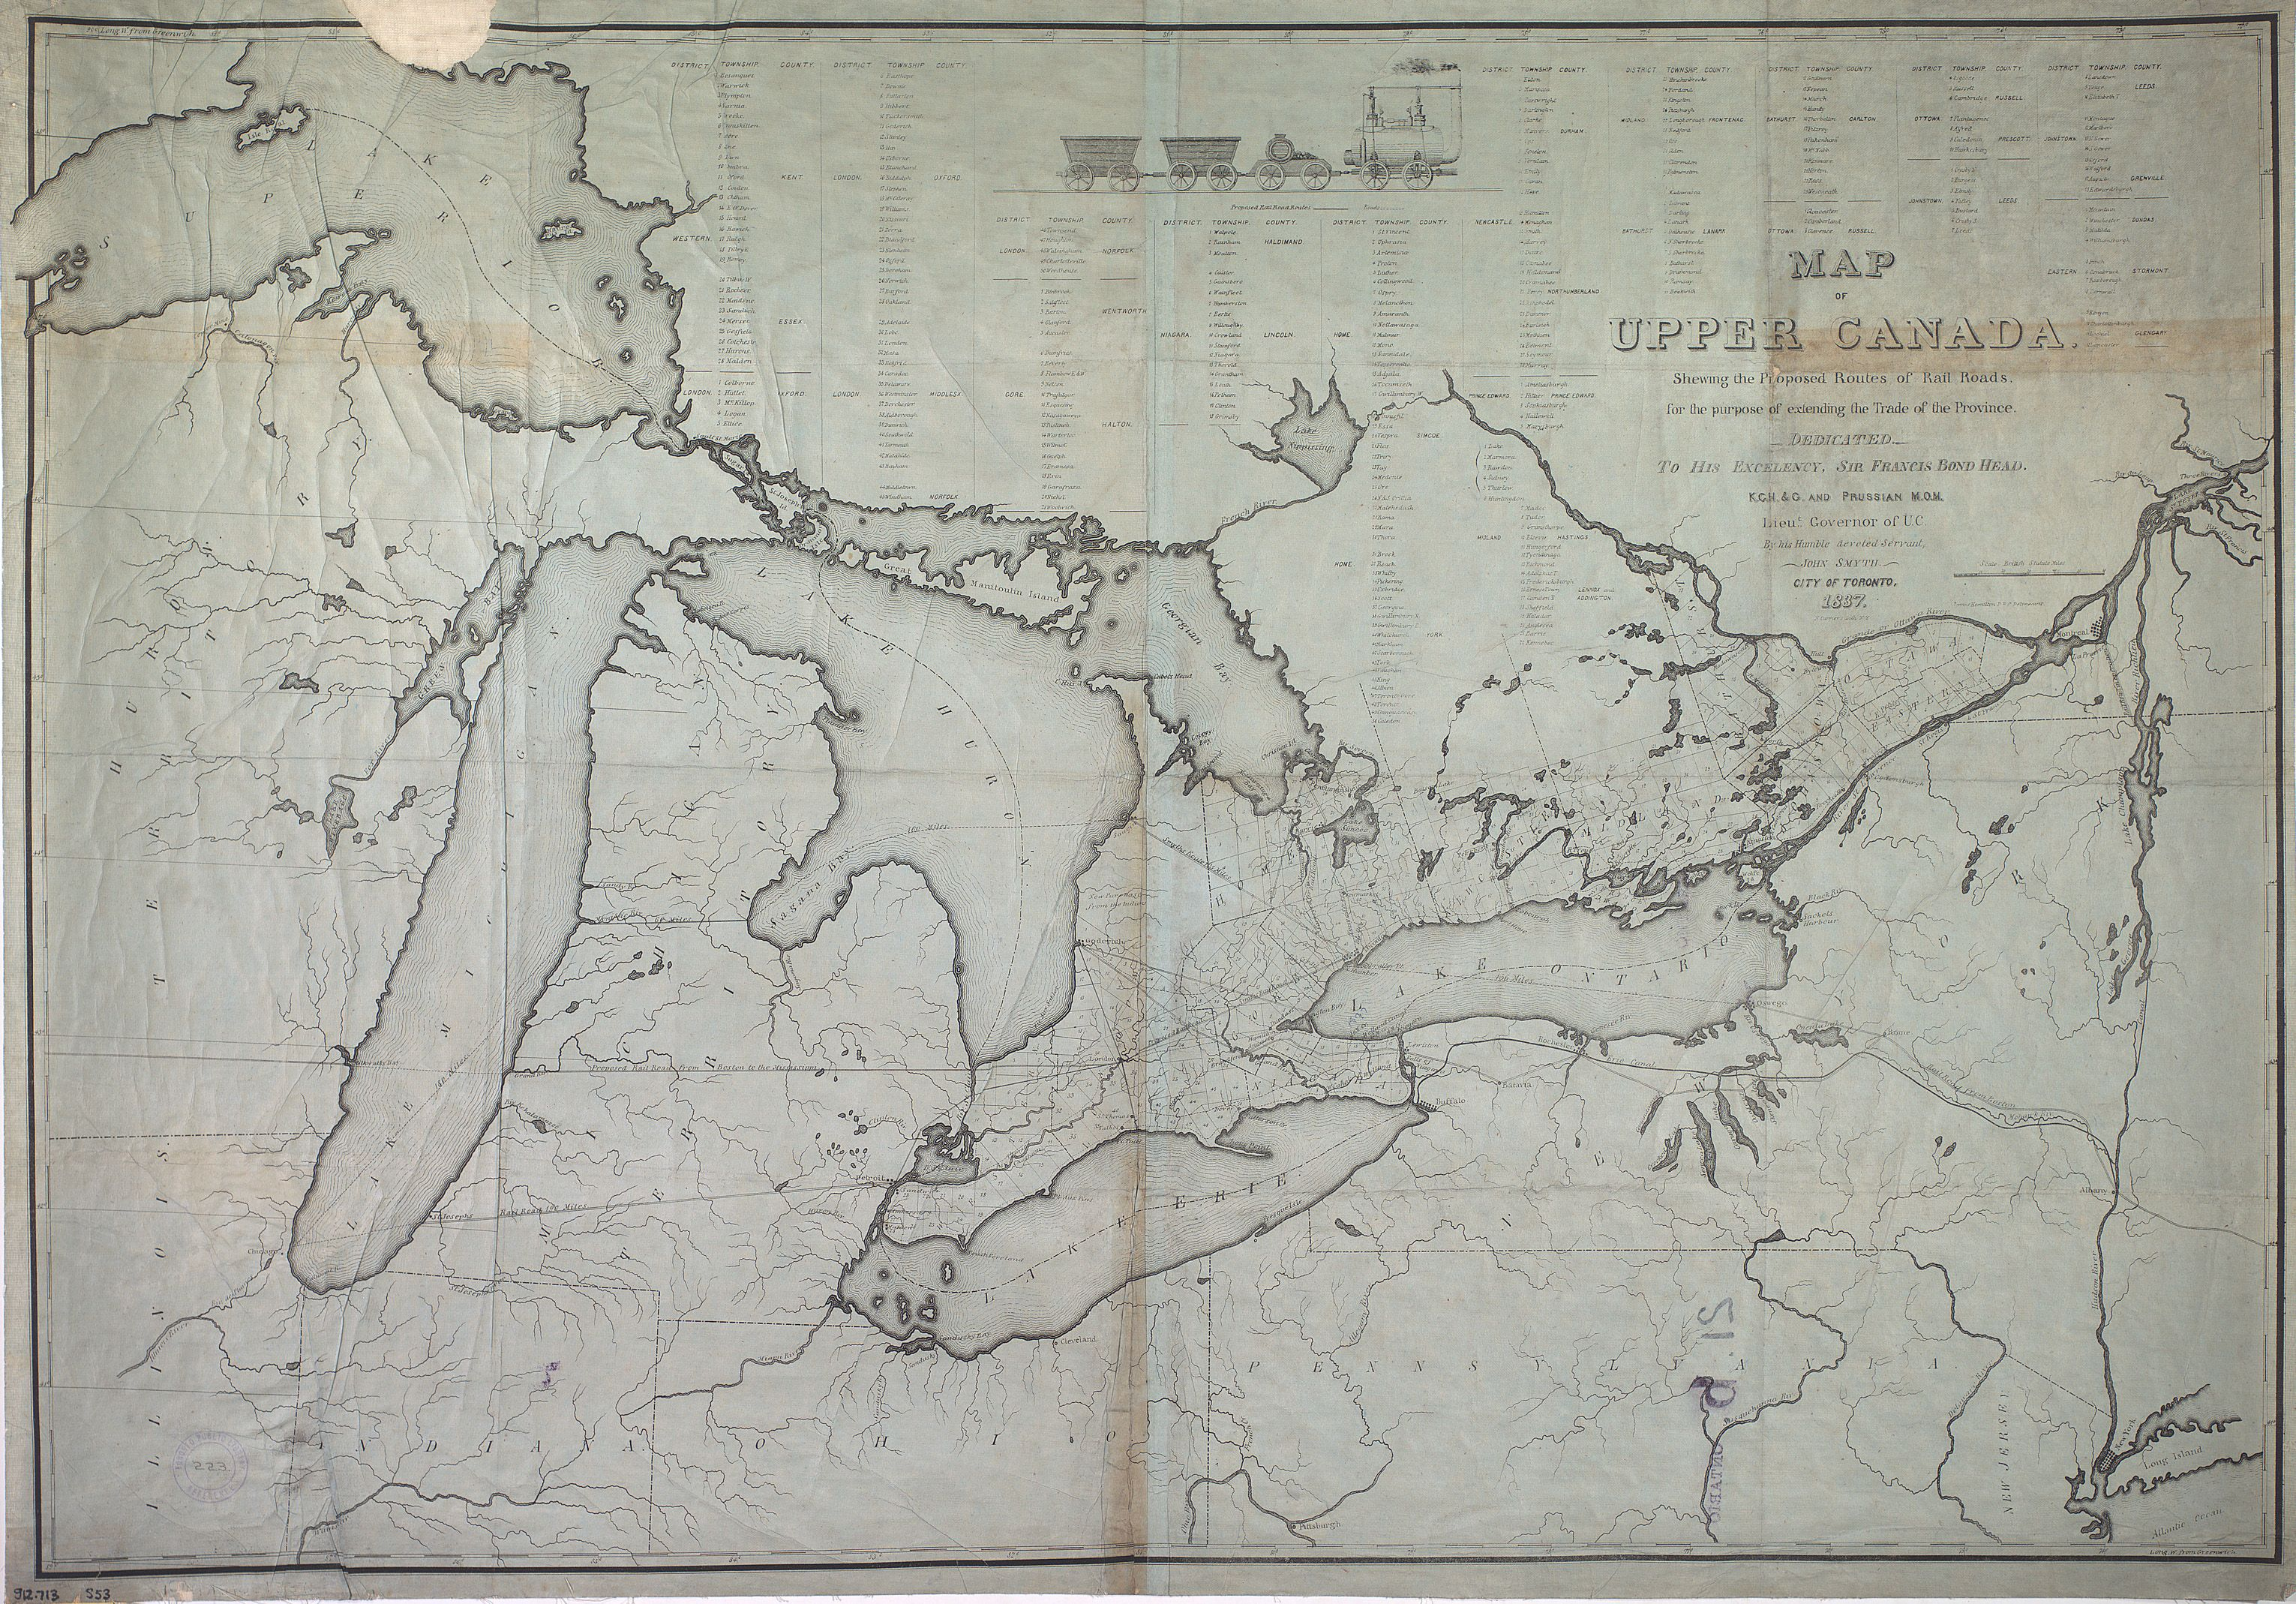 Map of Upper Canada shewing the proposed